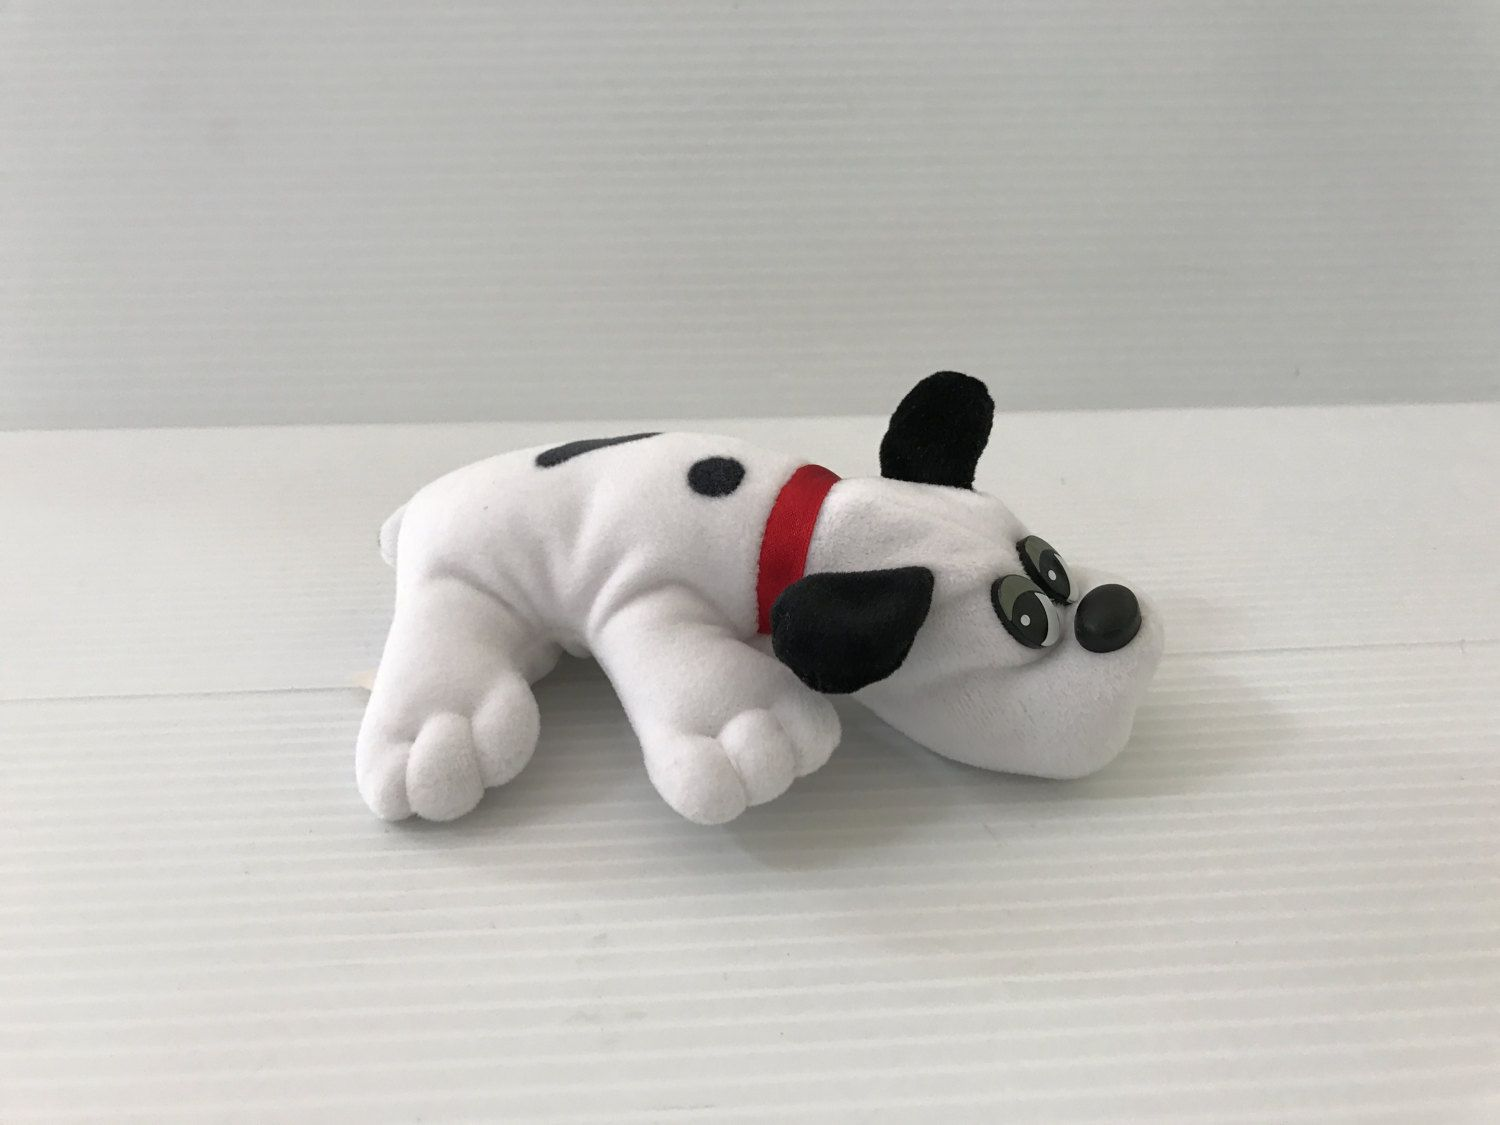 POUND PUPPY stuffed animal small Pound Puppy white Pound Puppy